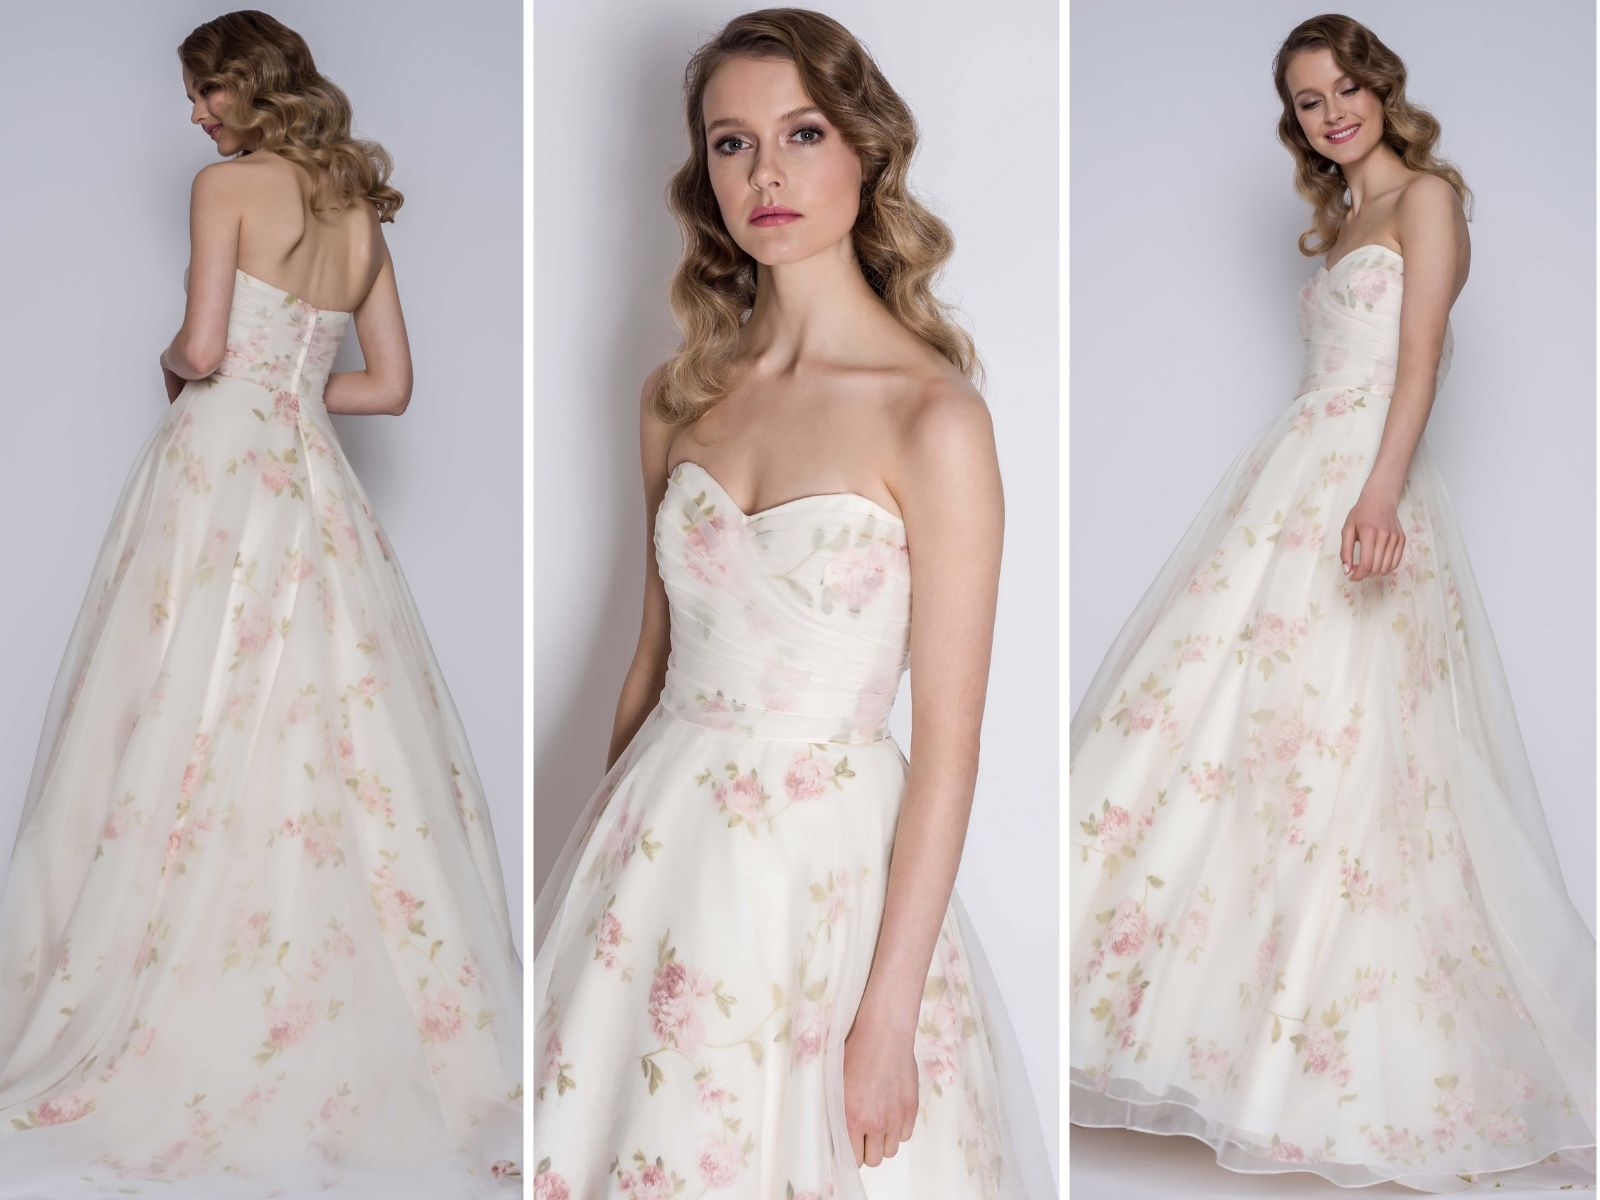 Summer wedding dresses at boho bride boutique